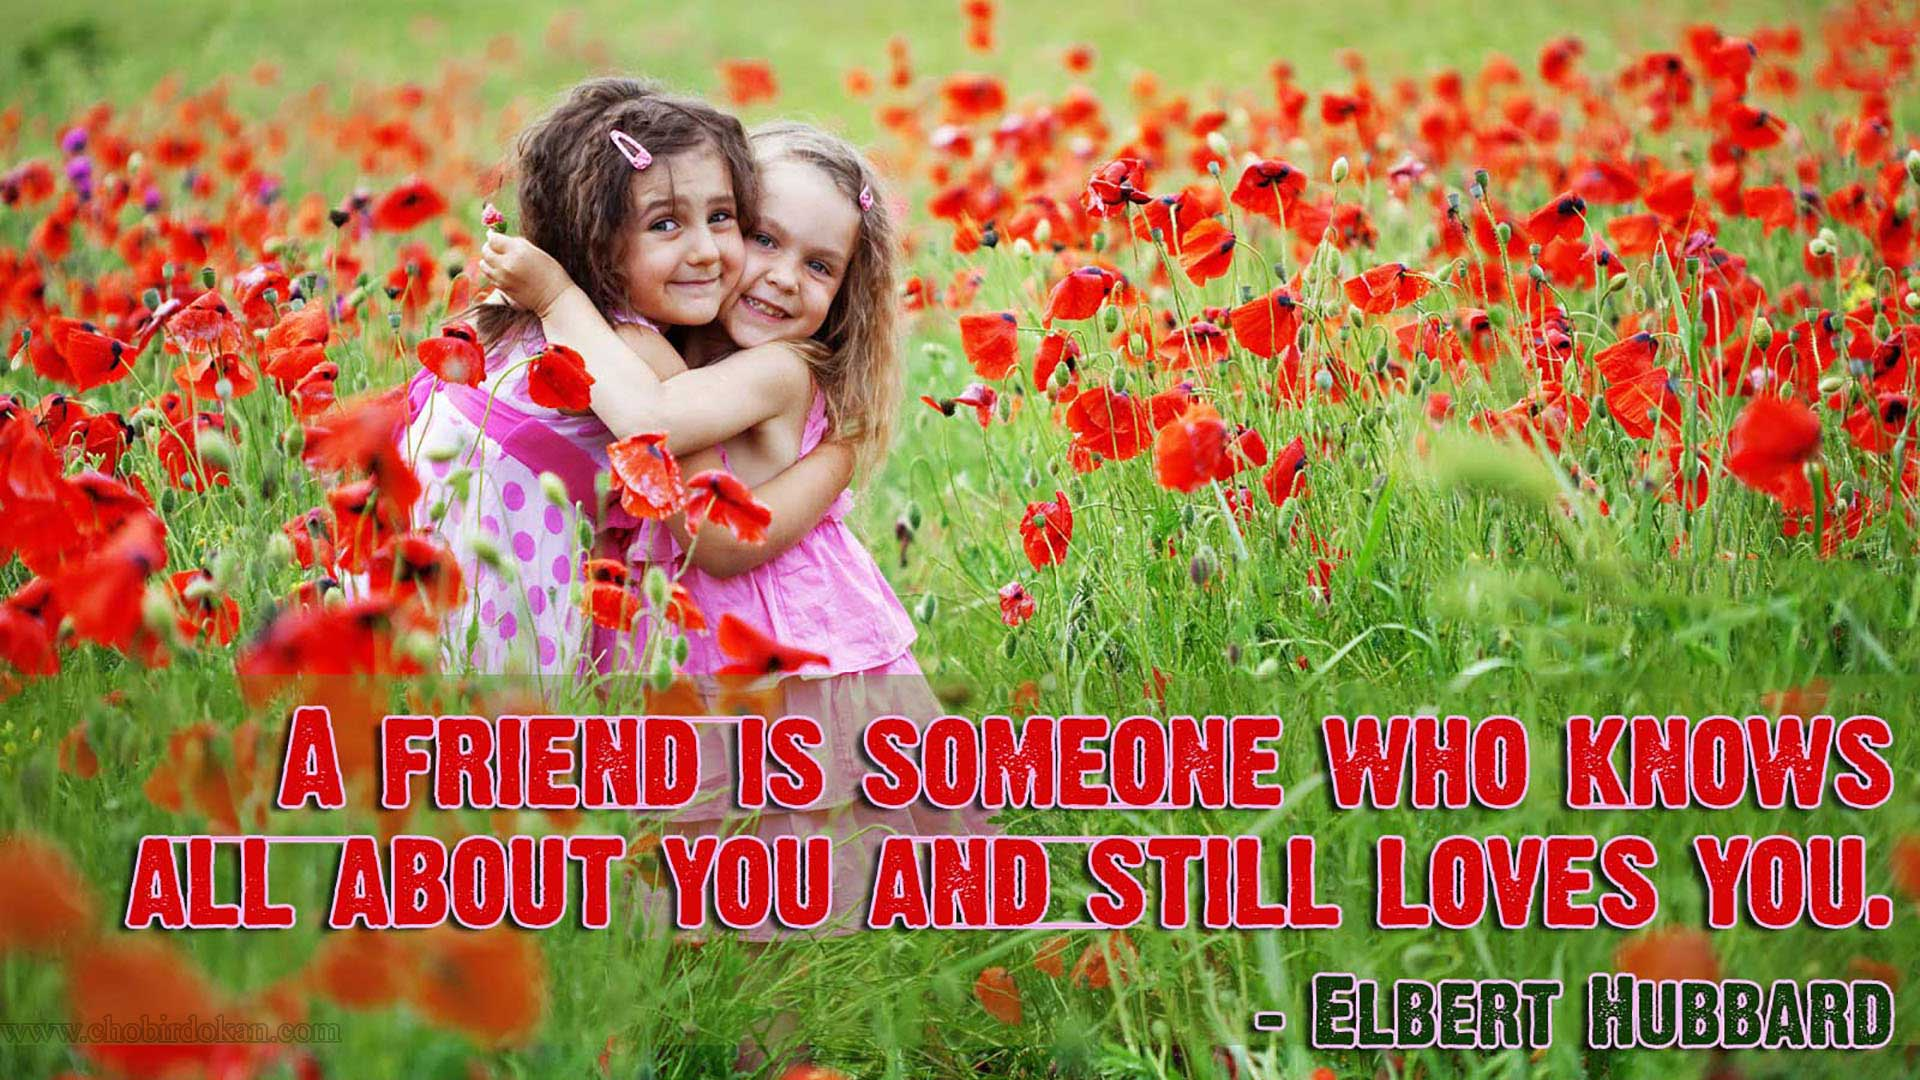 image of friendship wallpapers 57 wallpapers � adorable